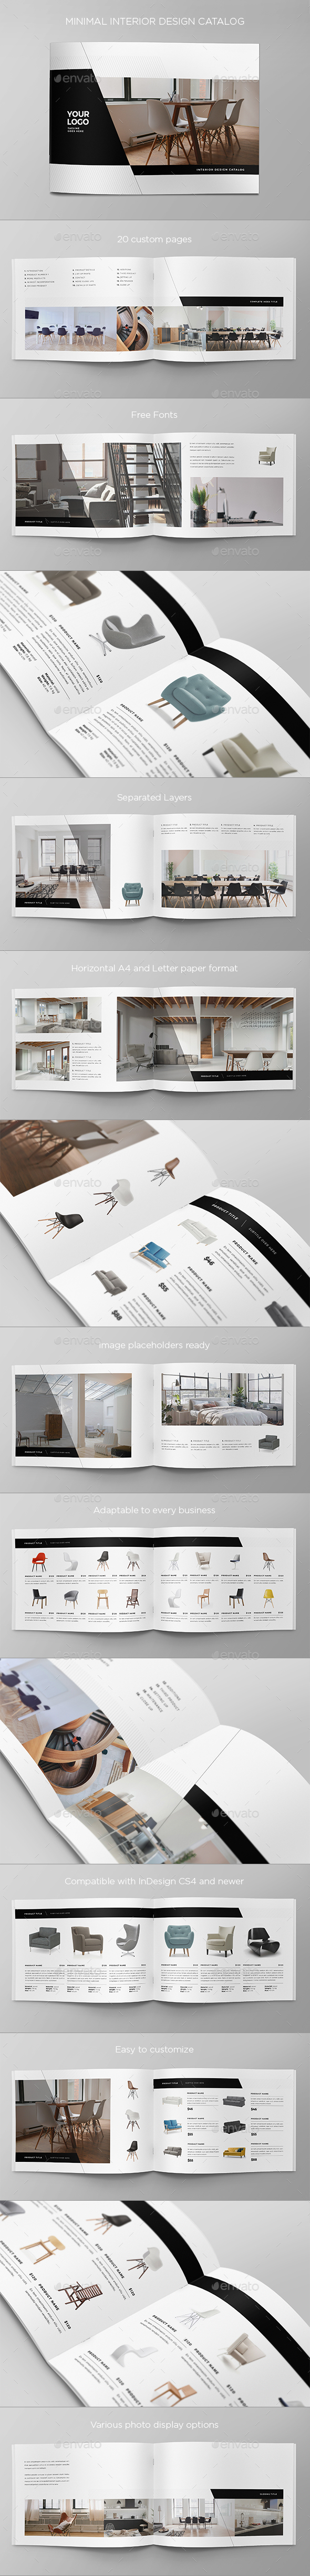 GraphicRiver Minimal Interior Design Catalog 20507492